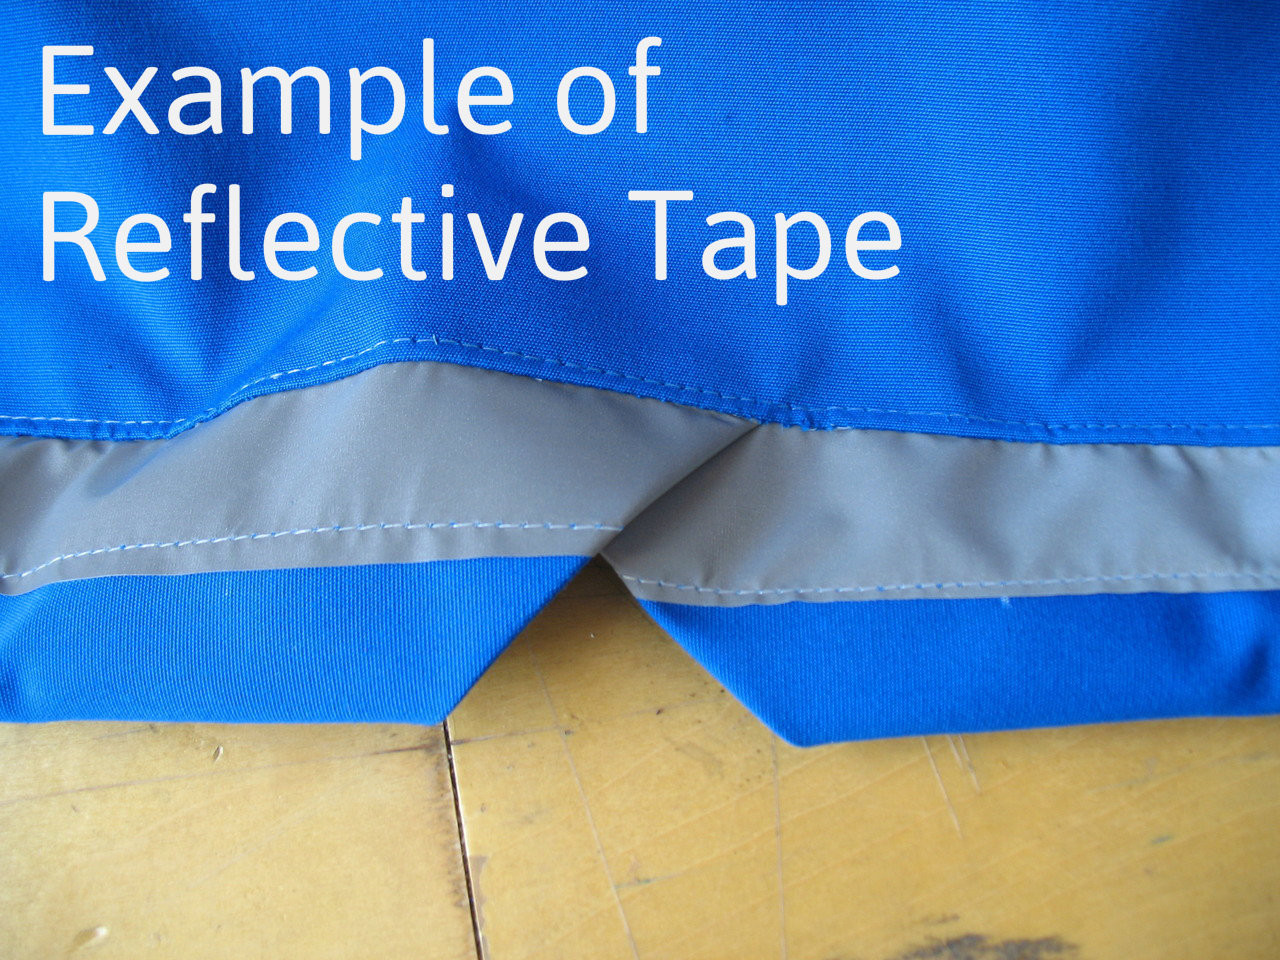 Optional Upgrade: Reflective Tape shown